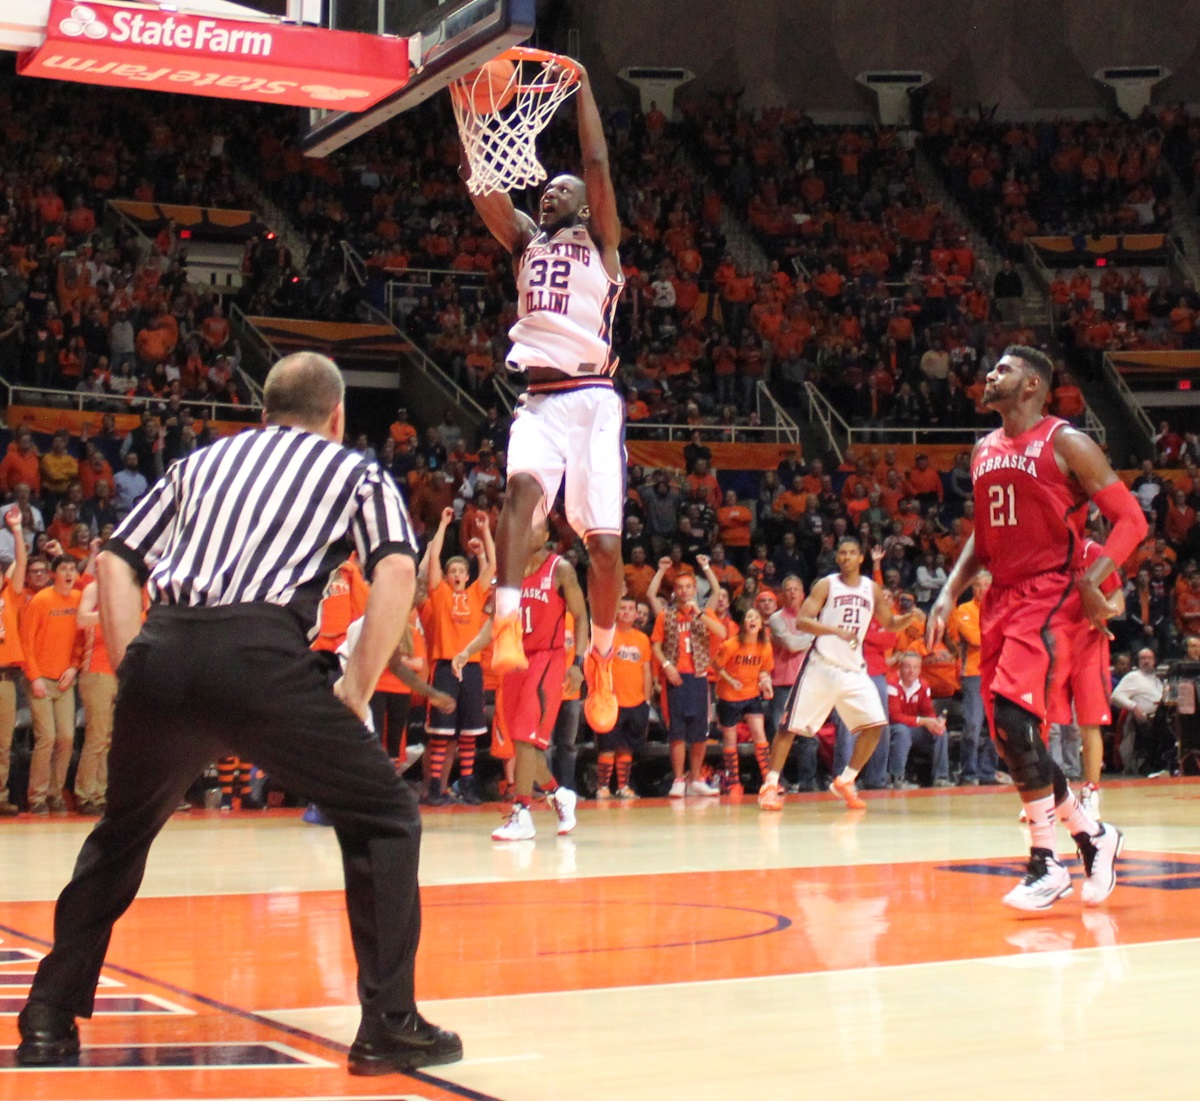 Nnanna Egwu capped his senior night with a slam dunk